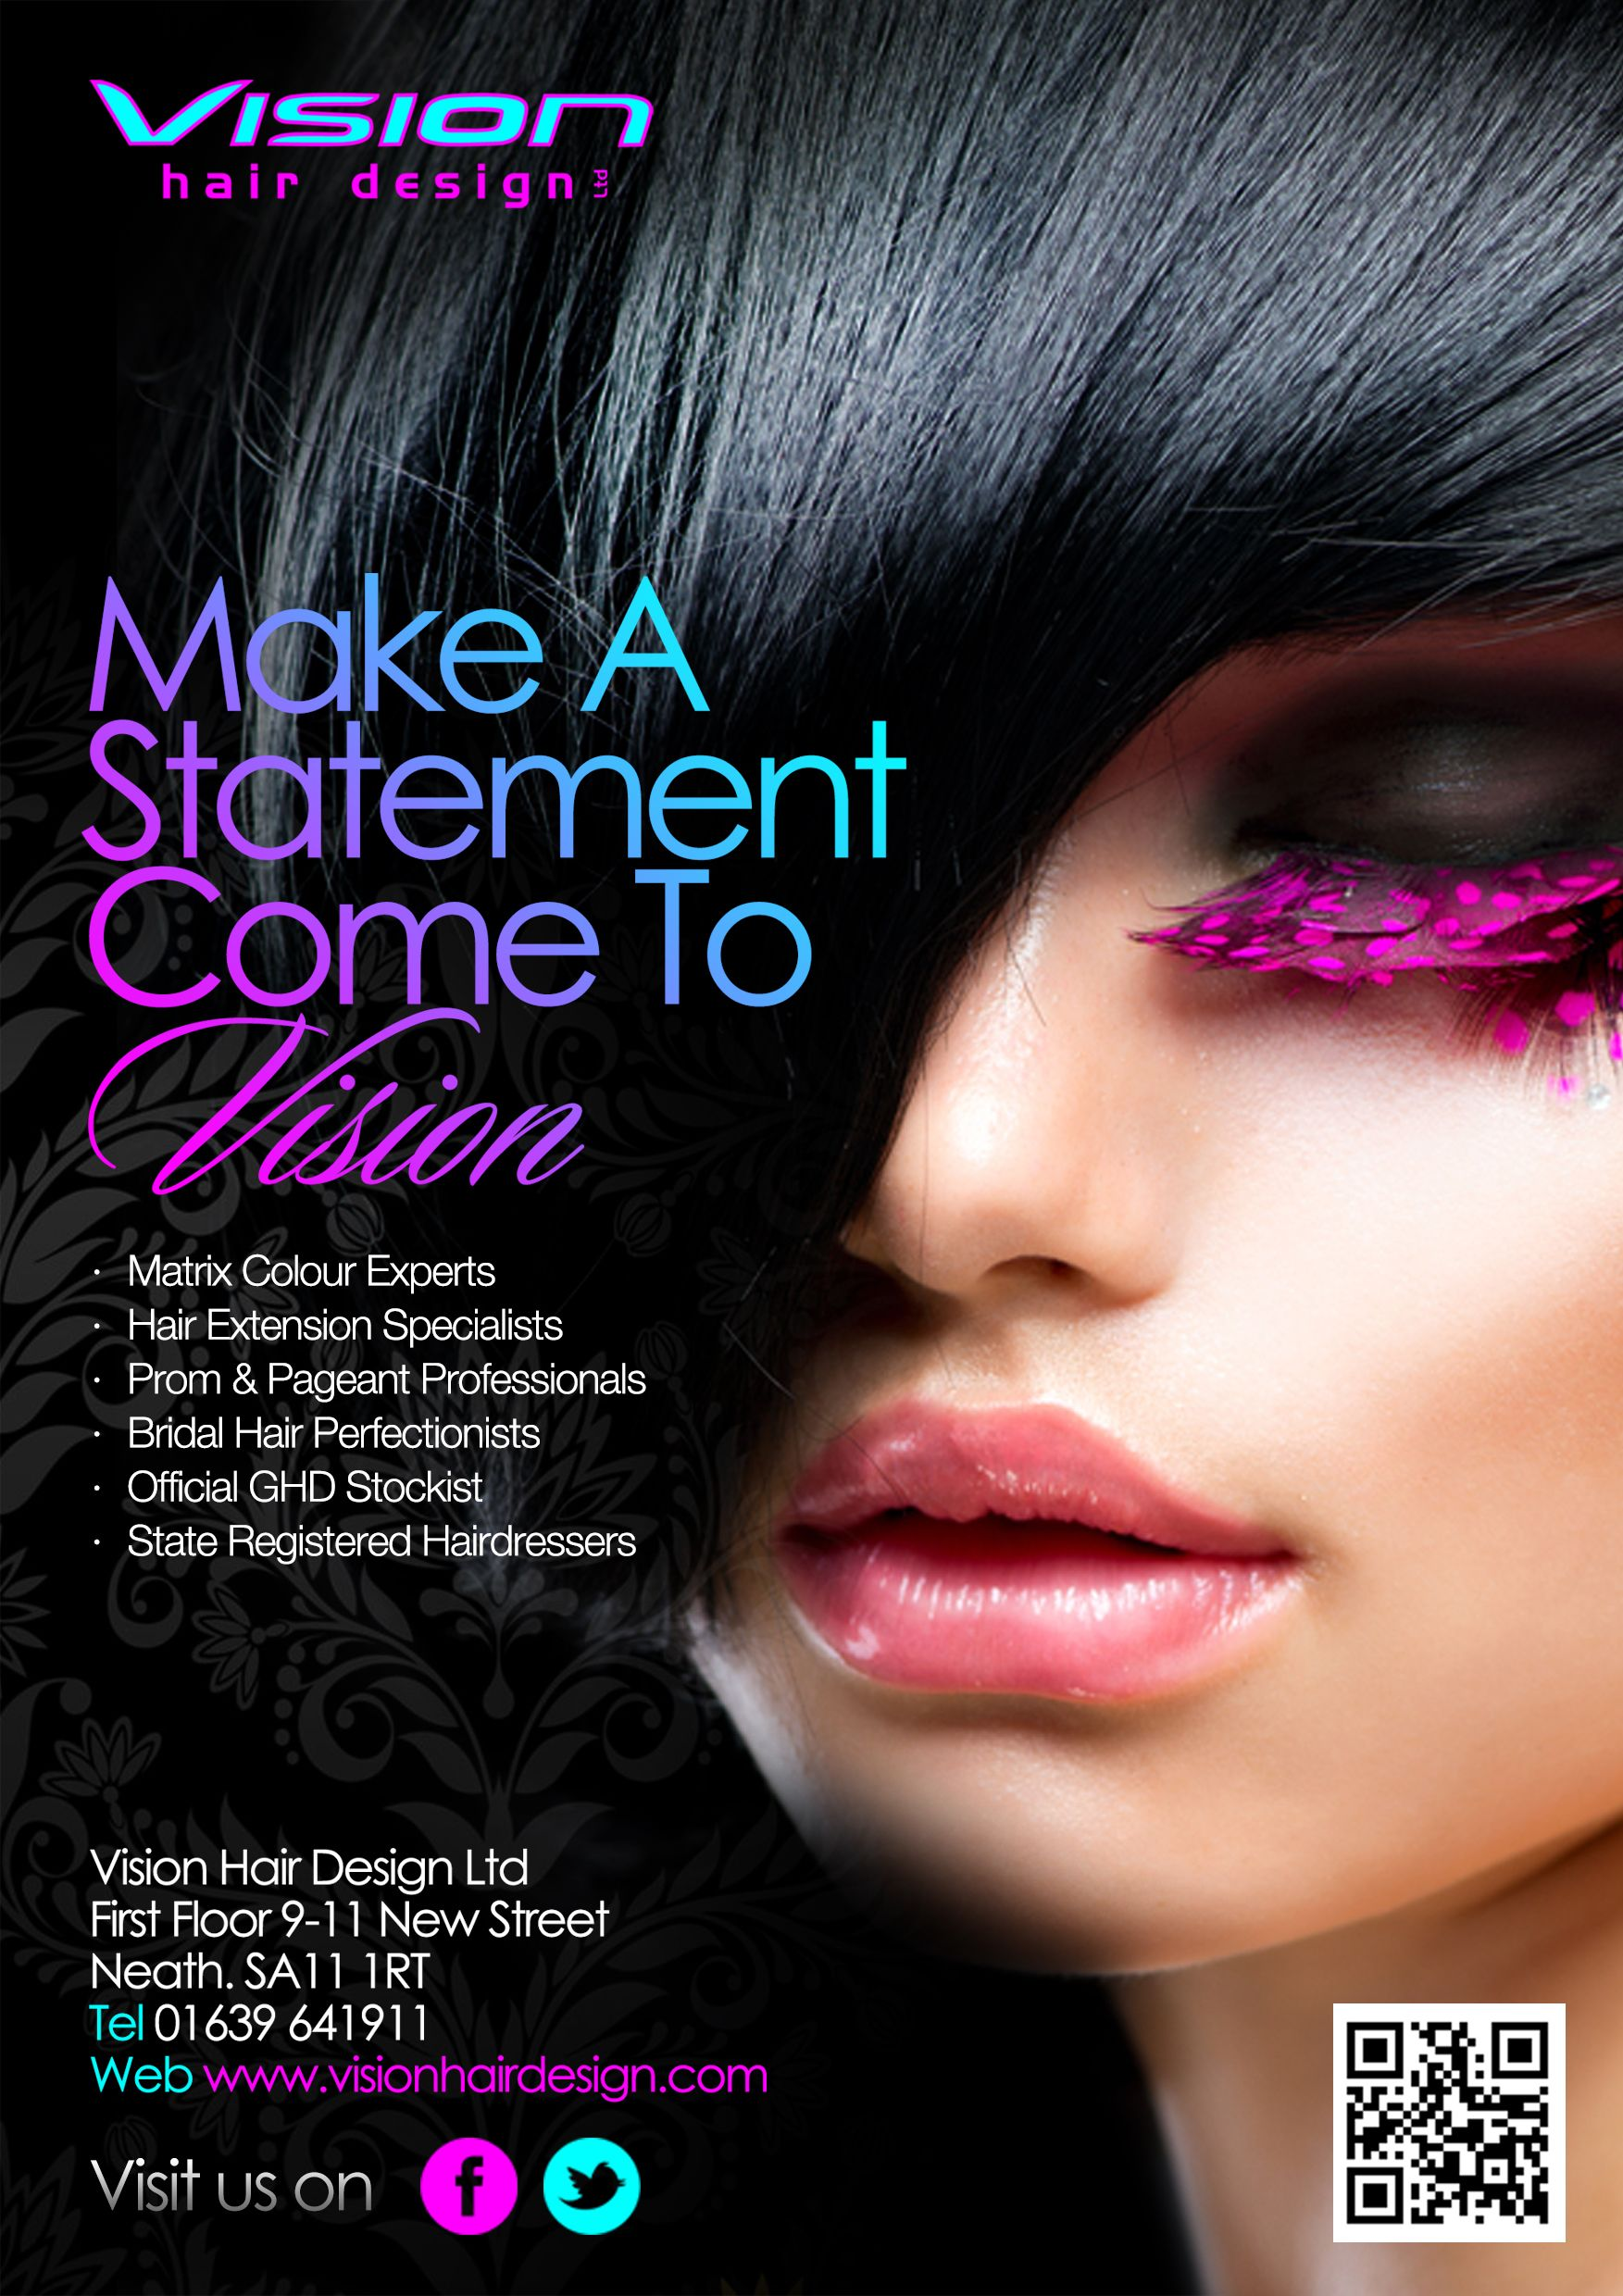 vision hair design flyer 2013